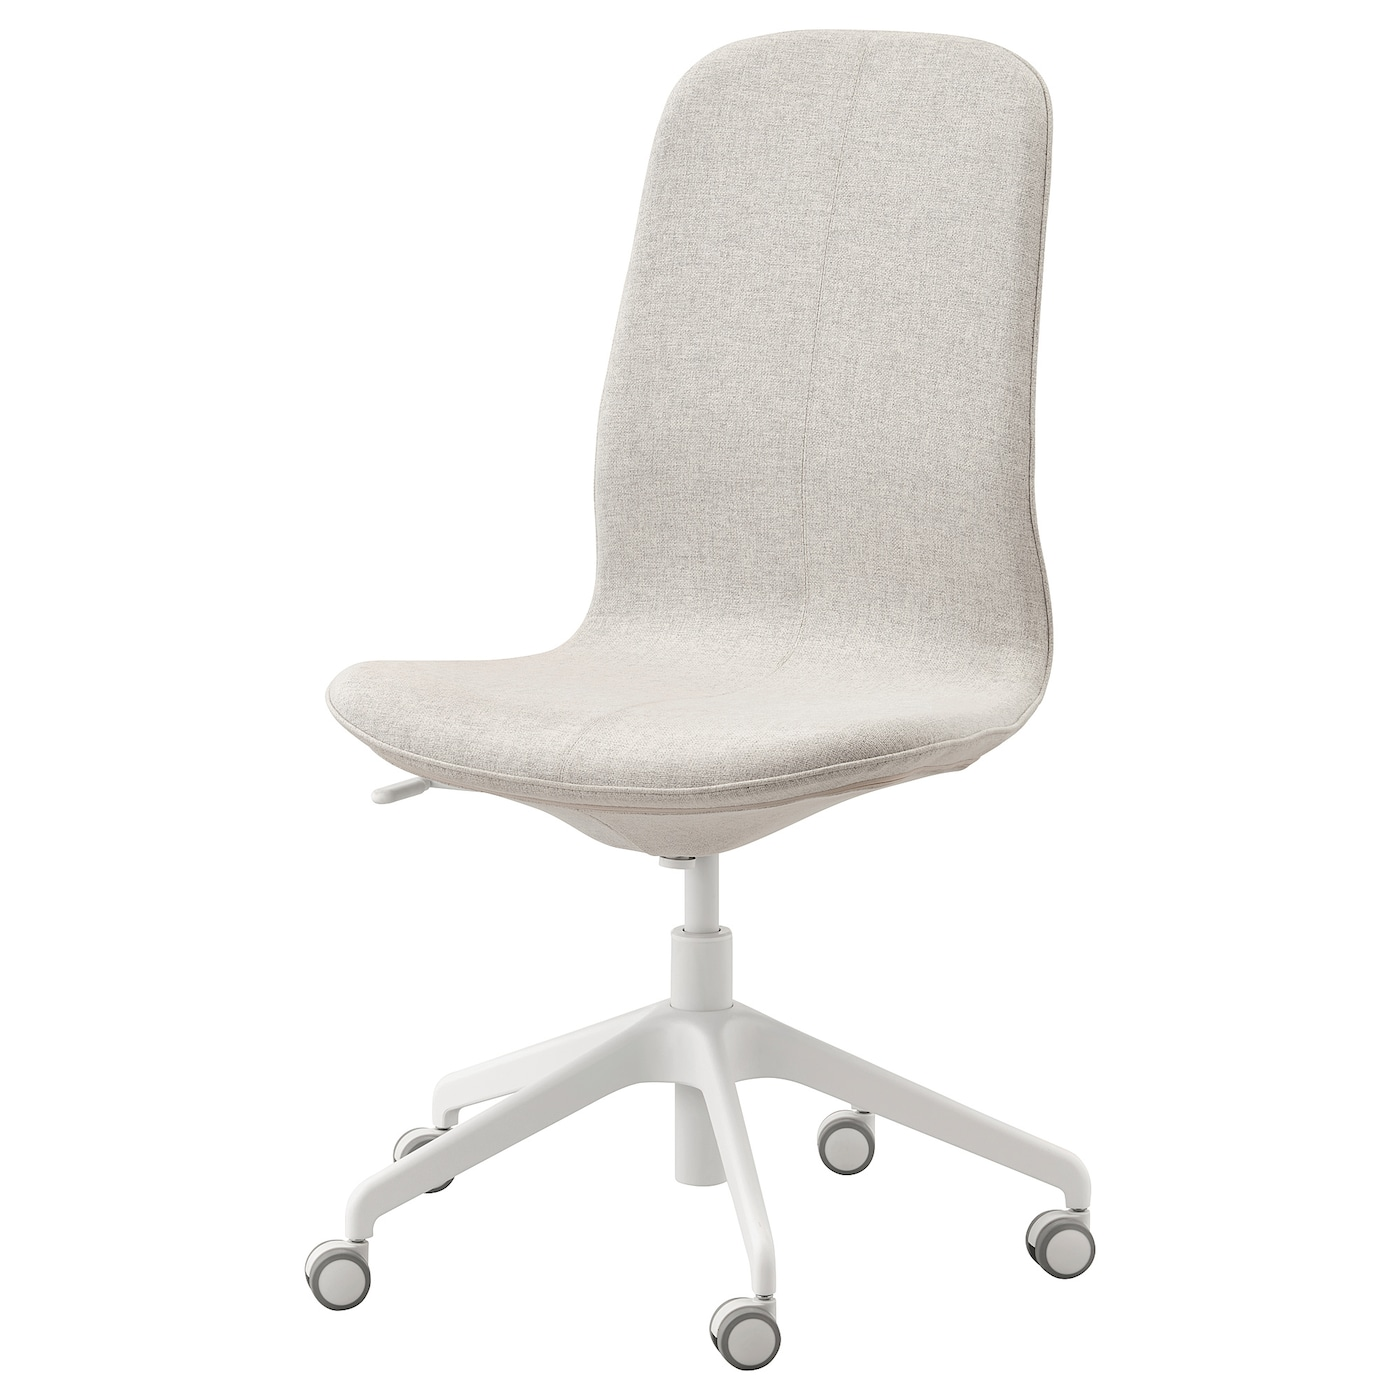 LÅNGFJÄLL Office chair - Gunnared beige/white